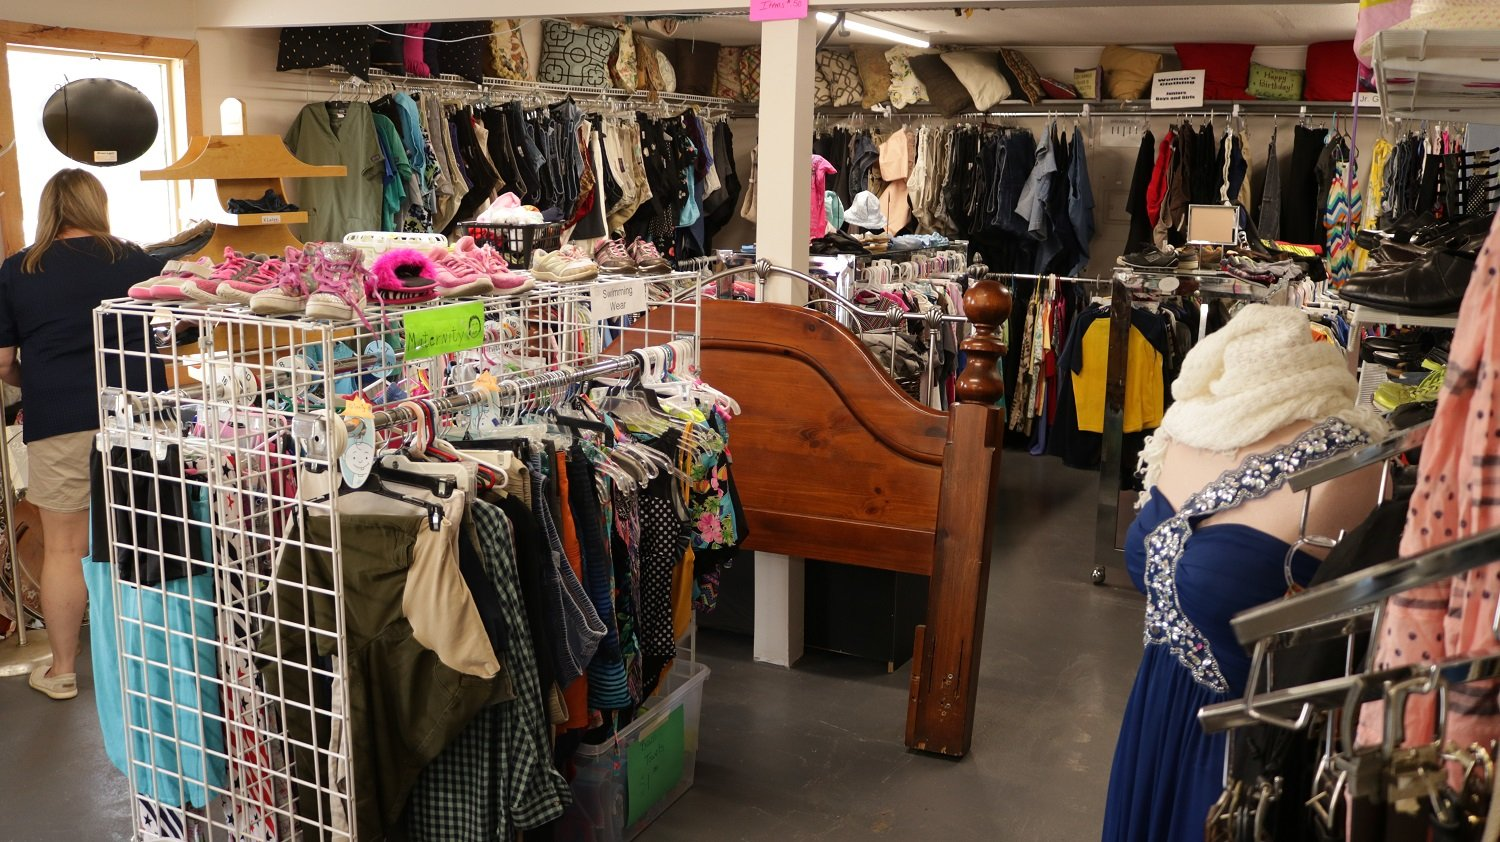 The interior of Safehaven Now thrift store in Rogersville, MO, with clothing, furniture, and other goods